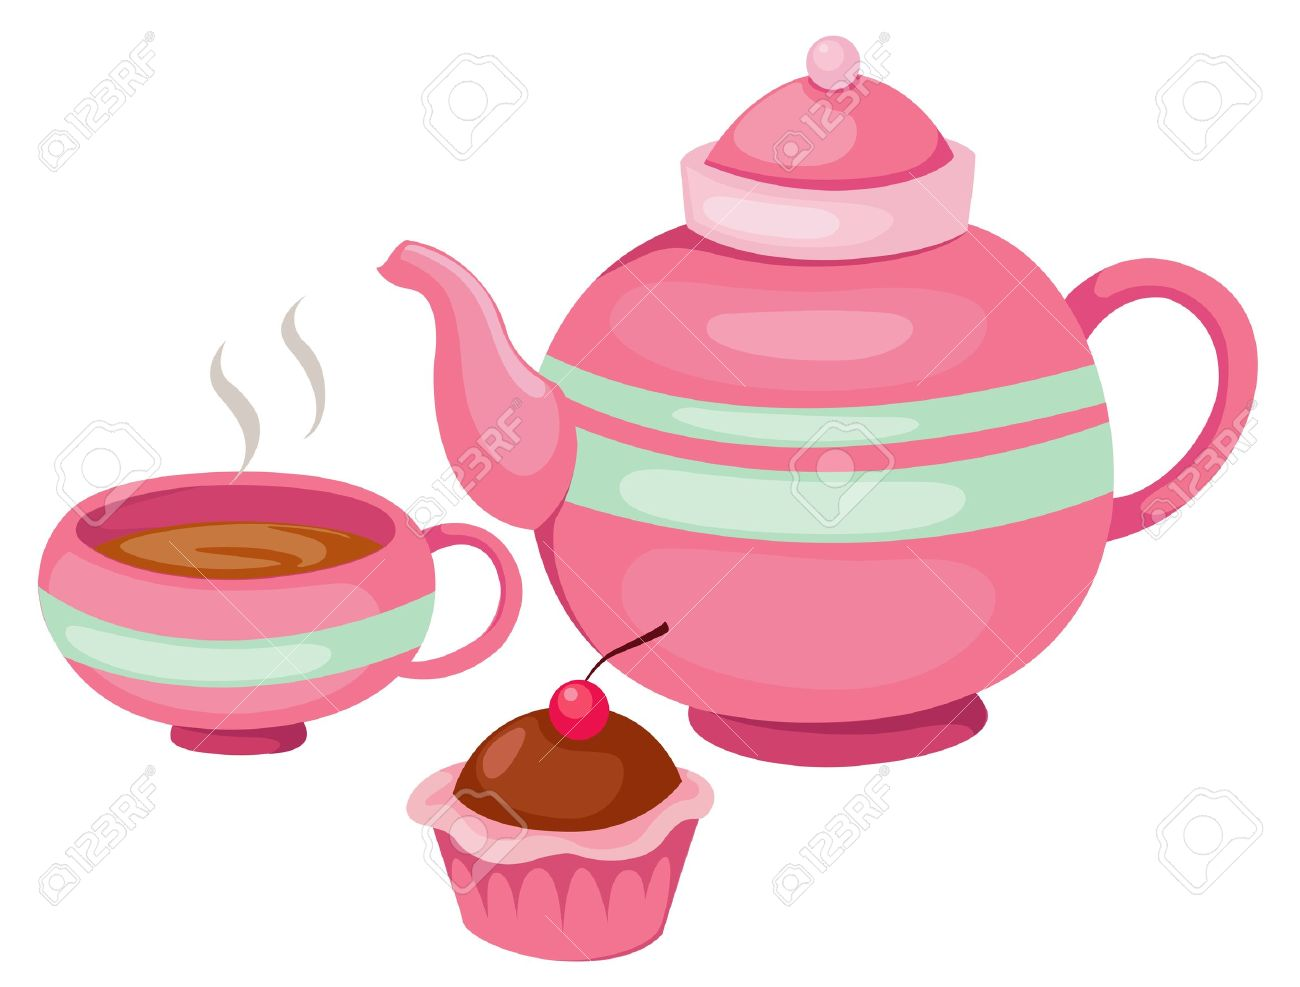 Teacup clipart tea set Cream tea cup collection set